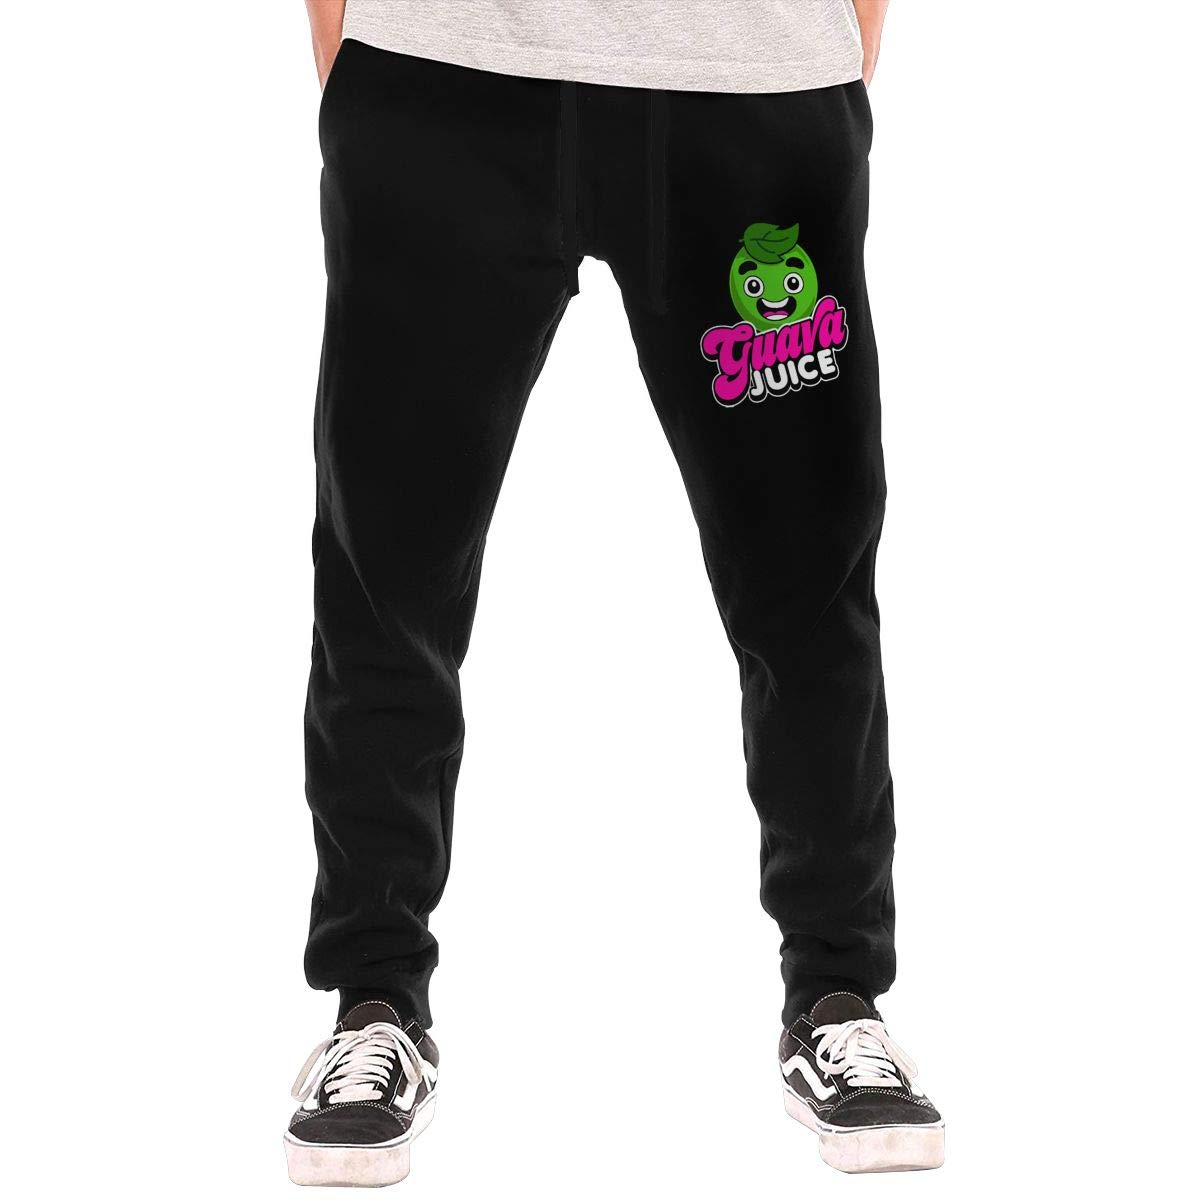 GoldsongTshirt Guava Juice Boys Autumn Winter Long Trousers Daily Track Trousers